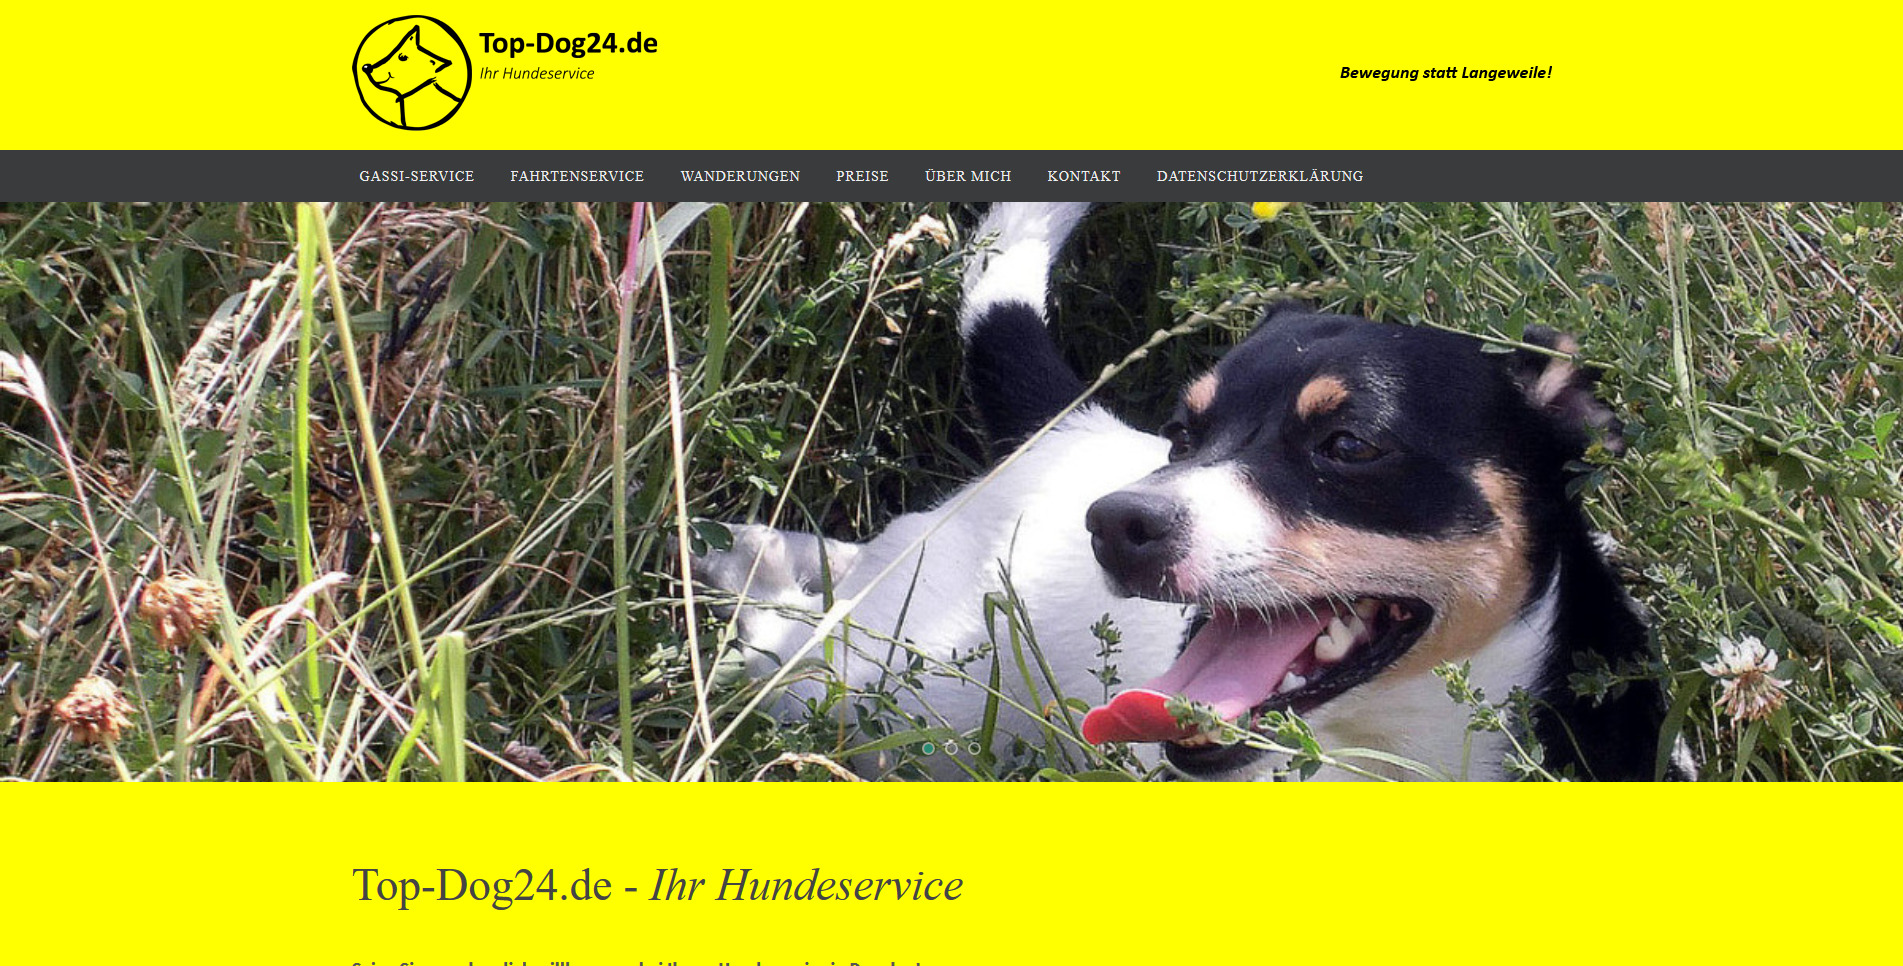 Top-Dog24.de - Ihr Hundeservice